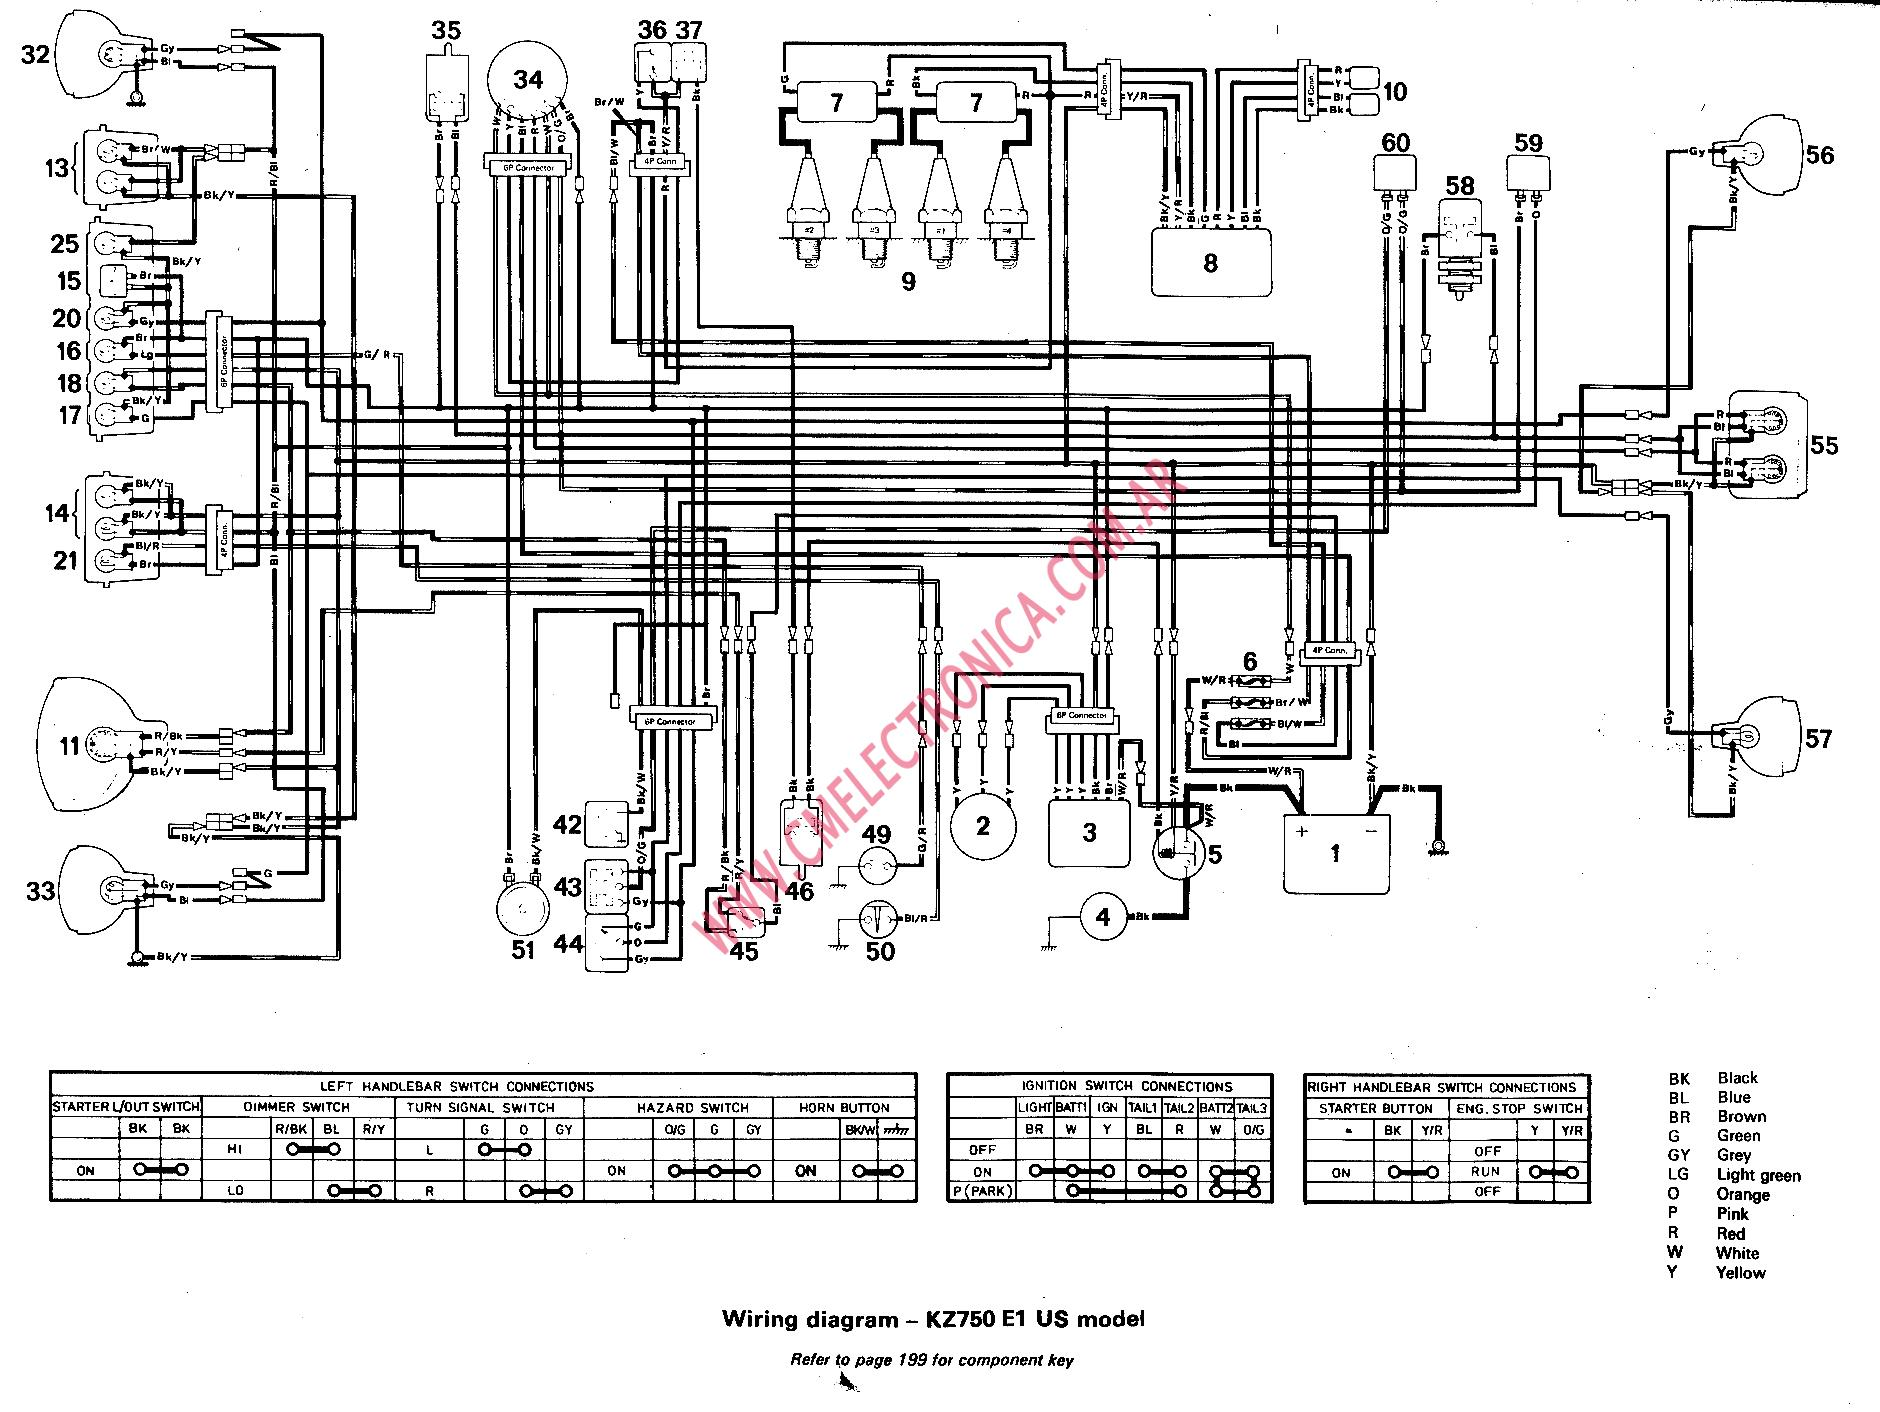 1999 suzuki intruder 800 wiring diagram